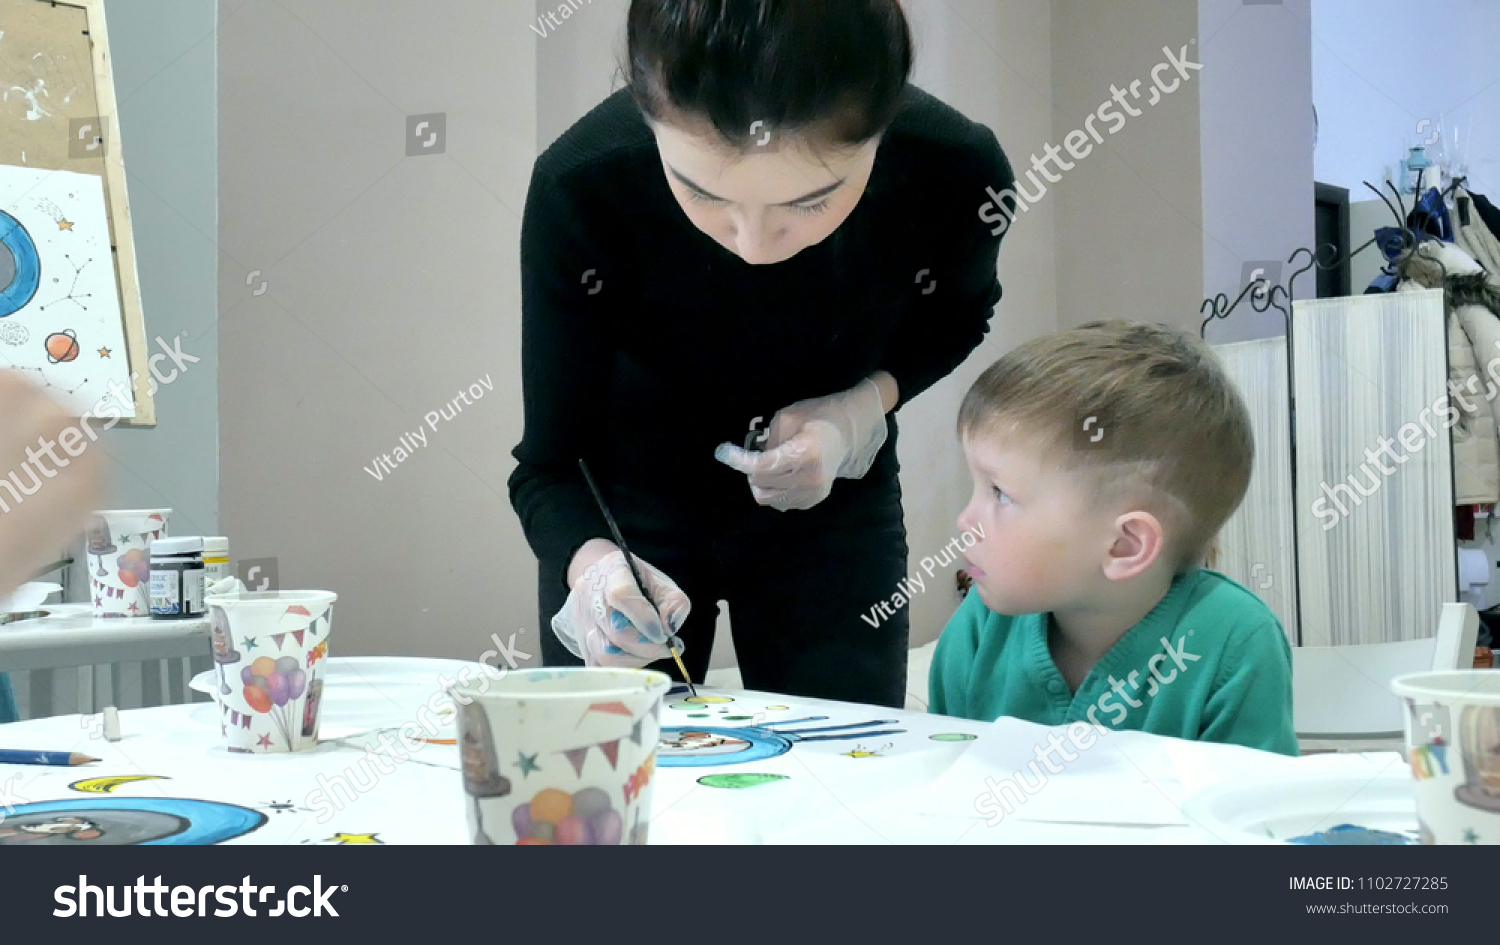 Children boys sitting together around the table in classroom and drawing.  With them is their